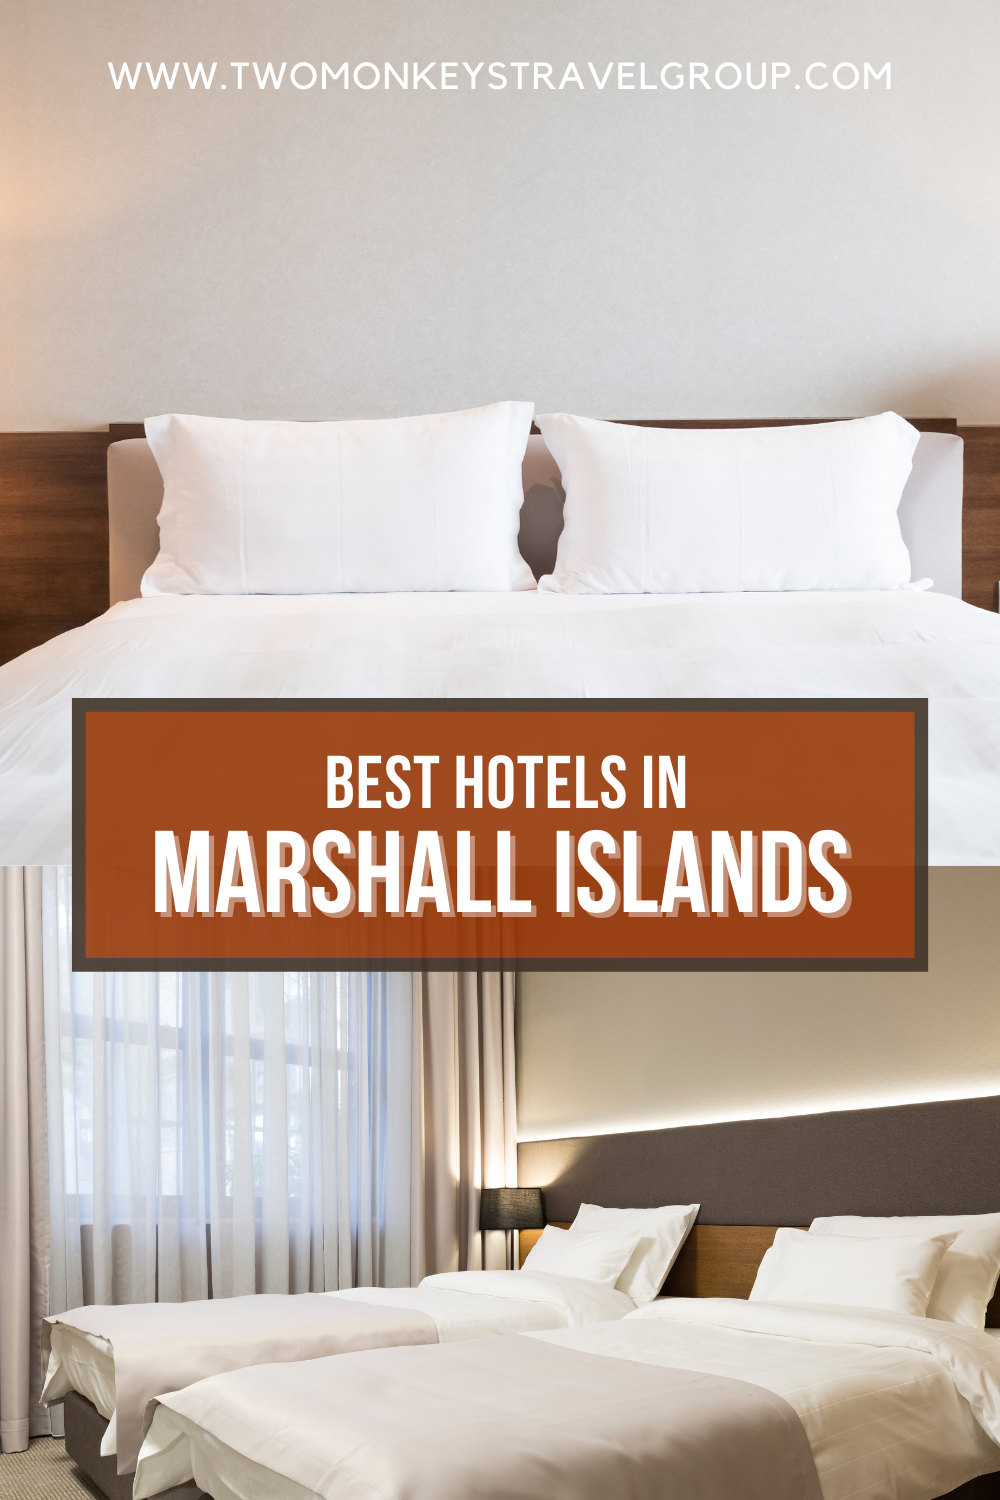 List of the Best Hotels in Marshall Islands (Pacific Ocean) Budget to Luxury